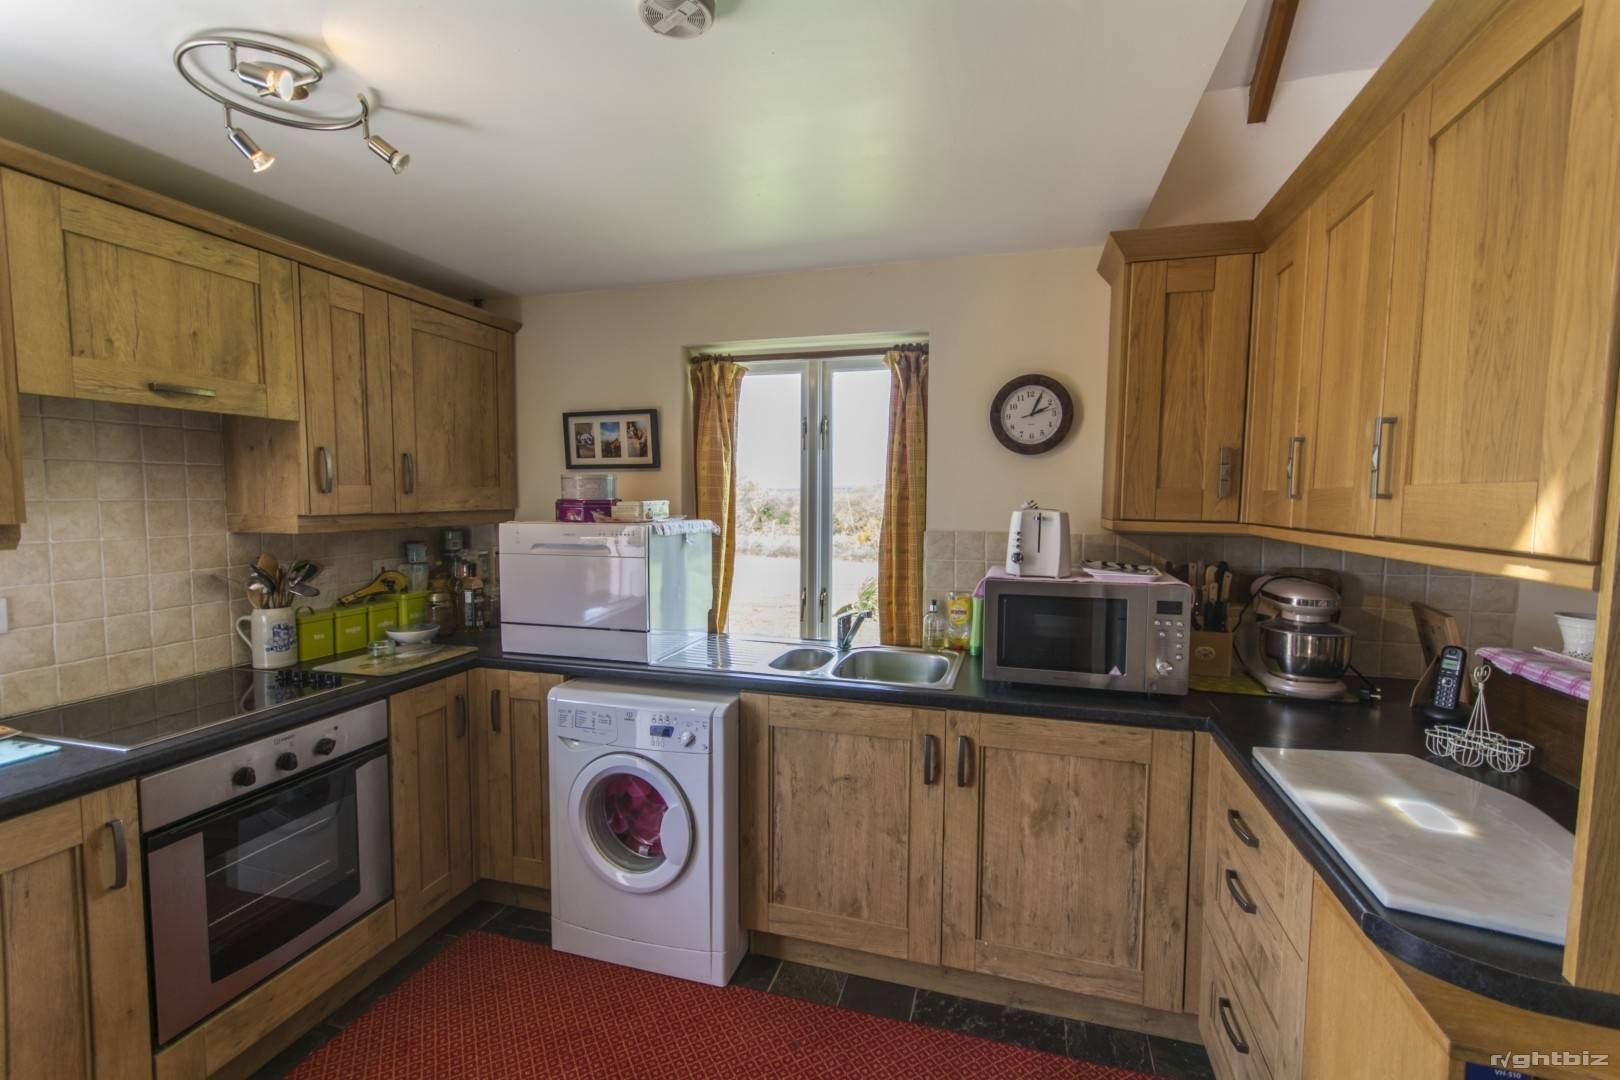 HOLIDAY LETTING BUSINESS/ LIVERY POTENTIAL + SMALLHOLDING + STABLES SET IN 10 ACRES - PEMBROKESHIRE - Image 13